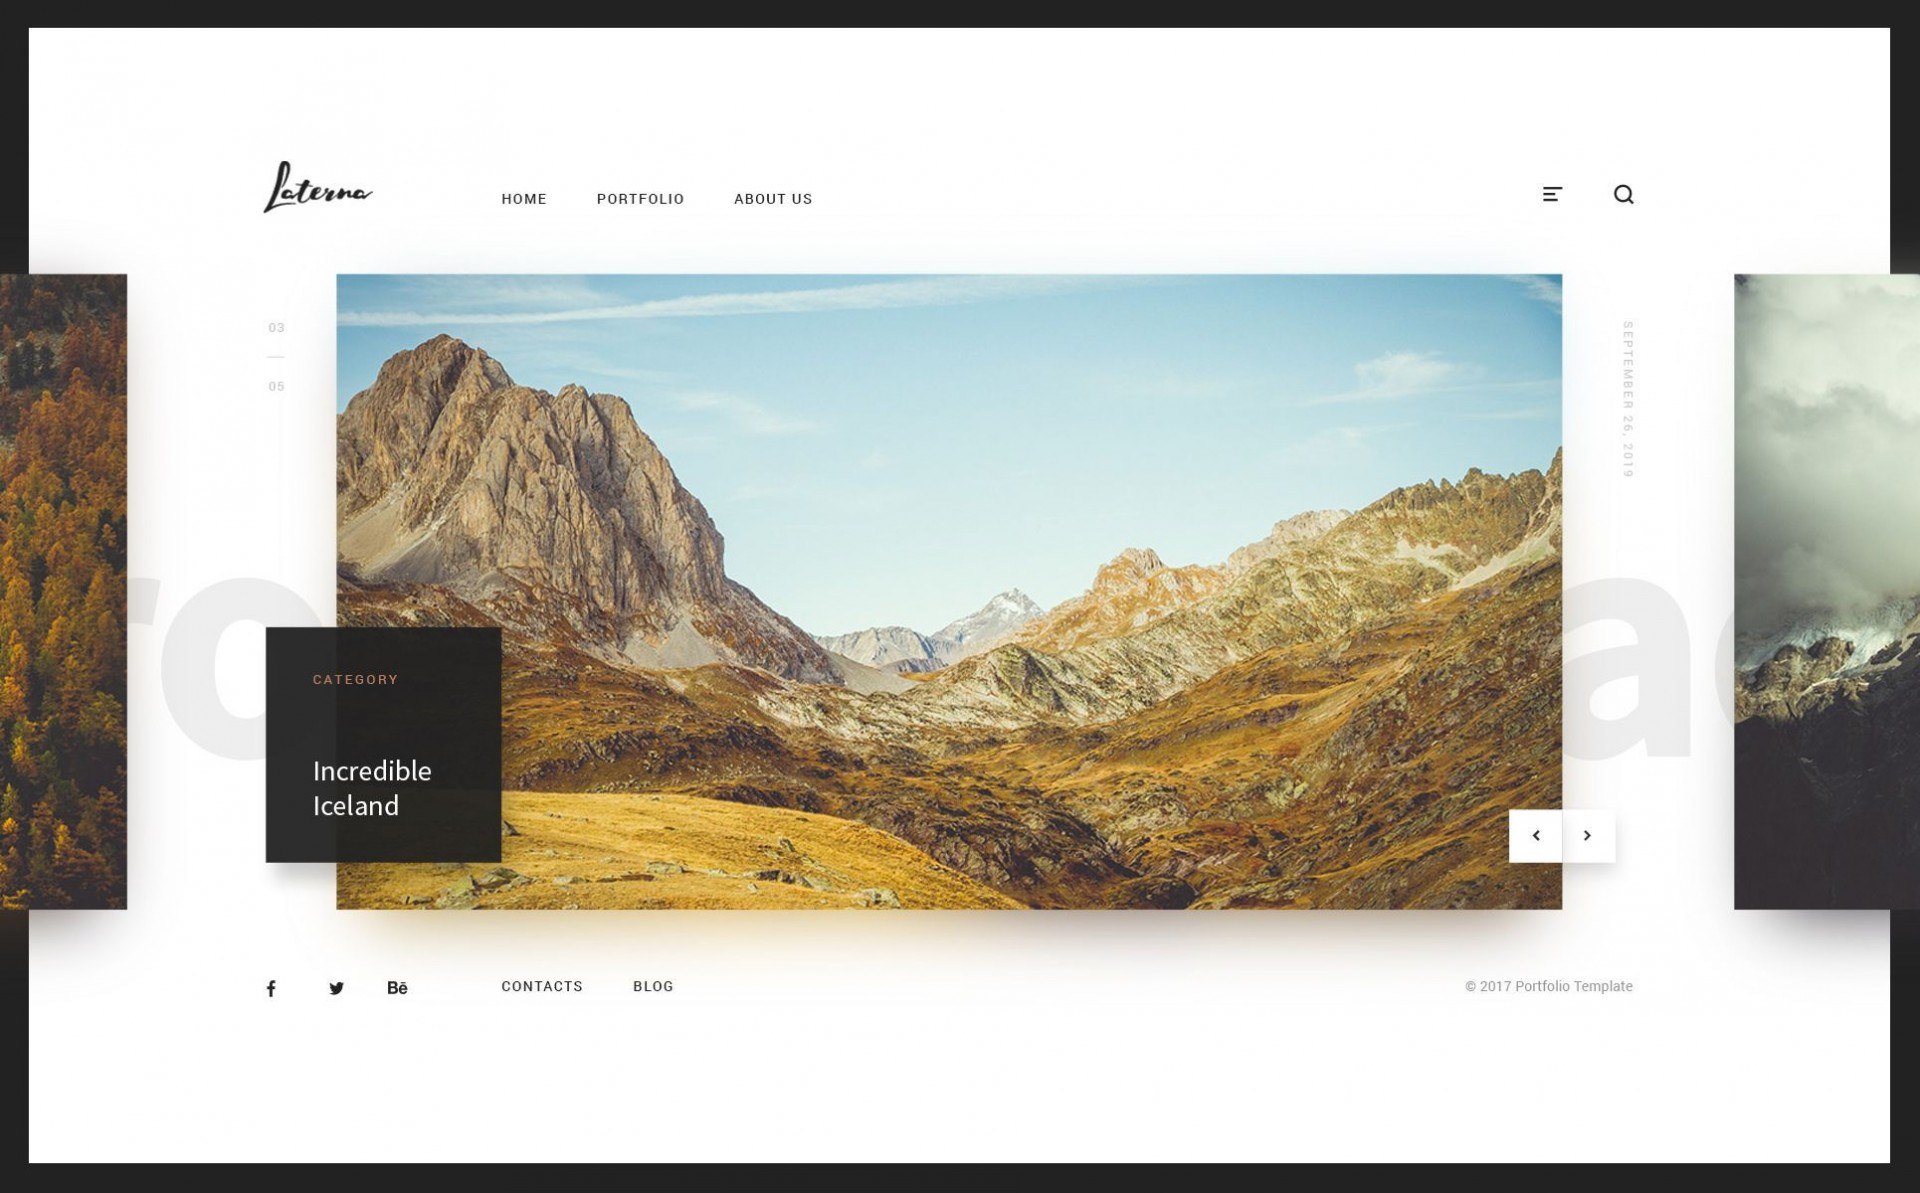 000 Shocking Website Template For Photographer Design  Photographers Free Responsive Photography Php Best1920